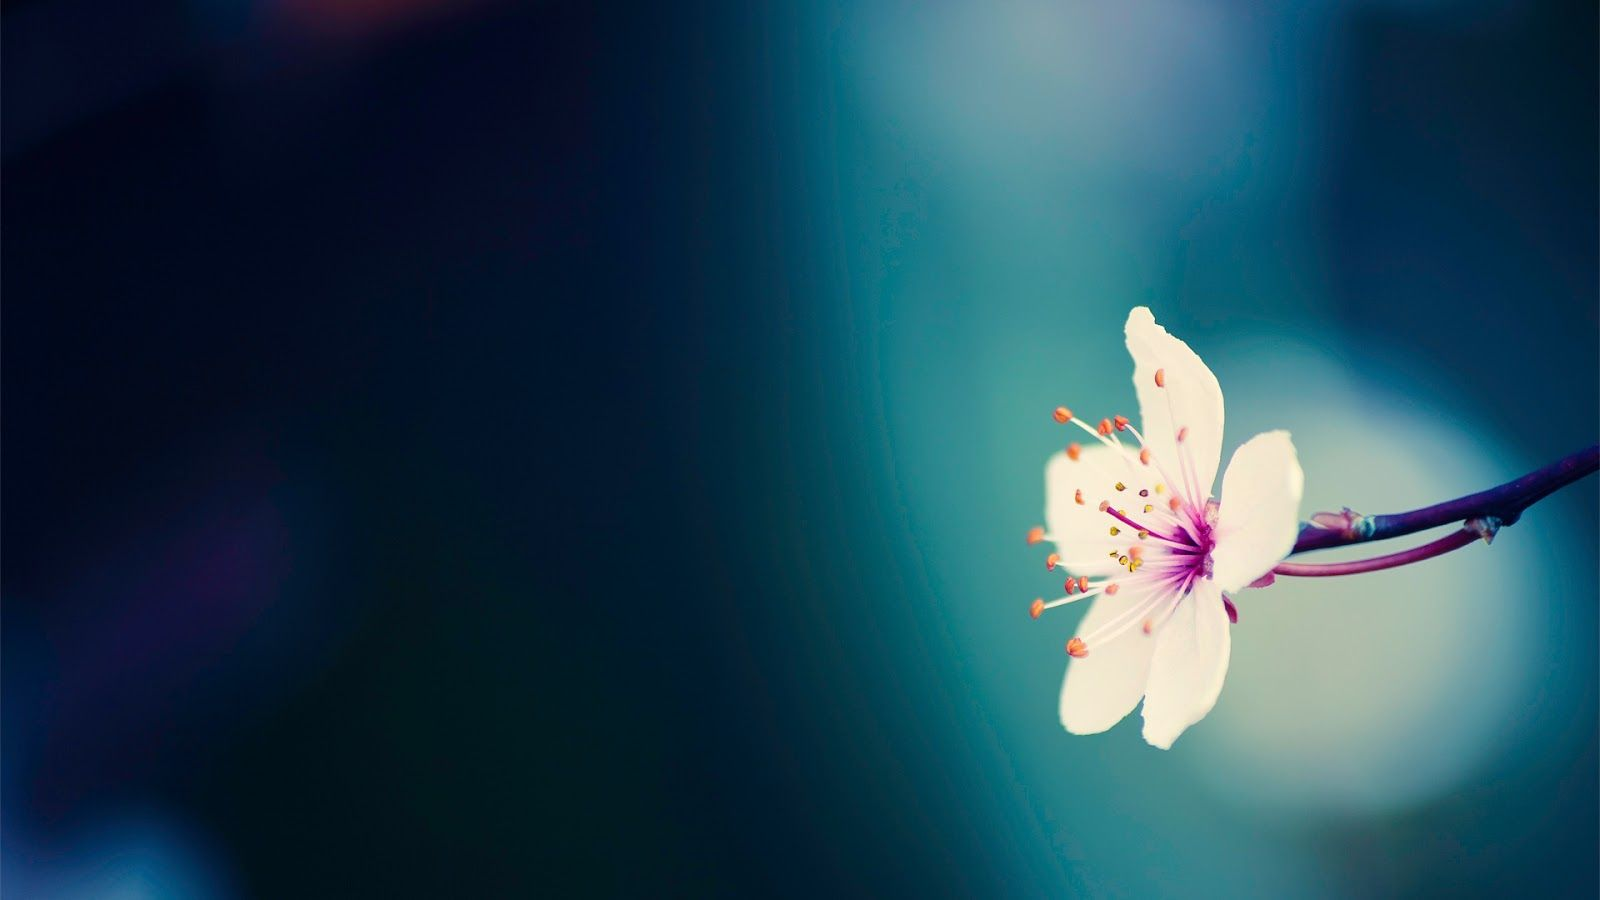 Free Pretty Backgrounds - Wallpaper Cave